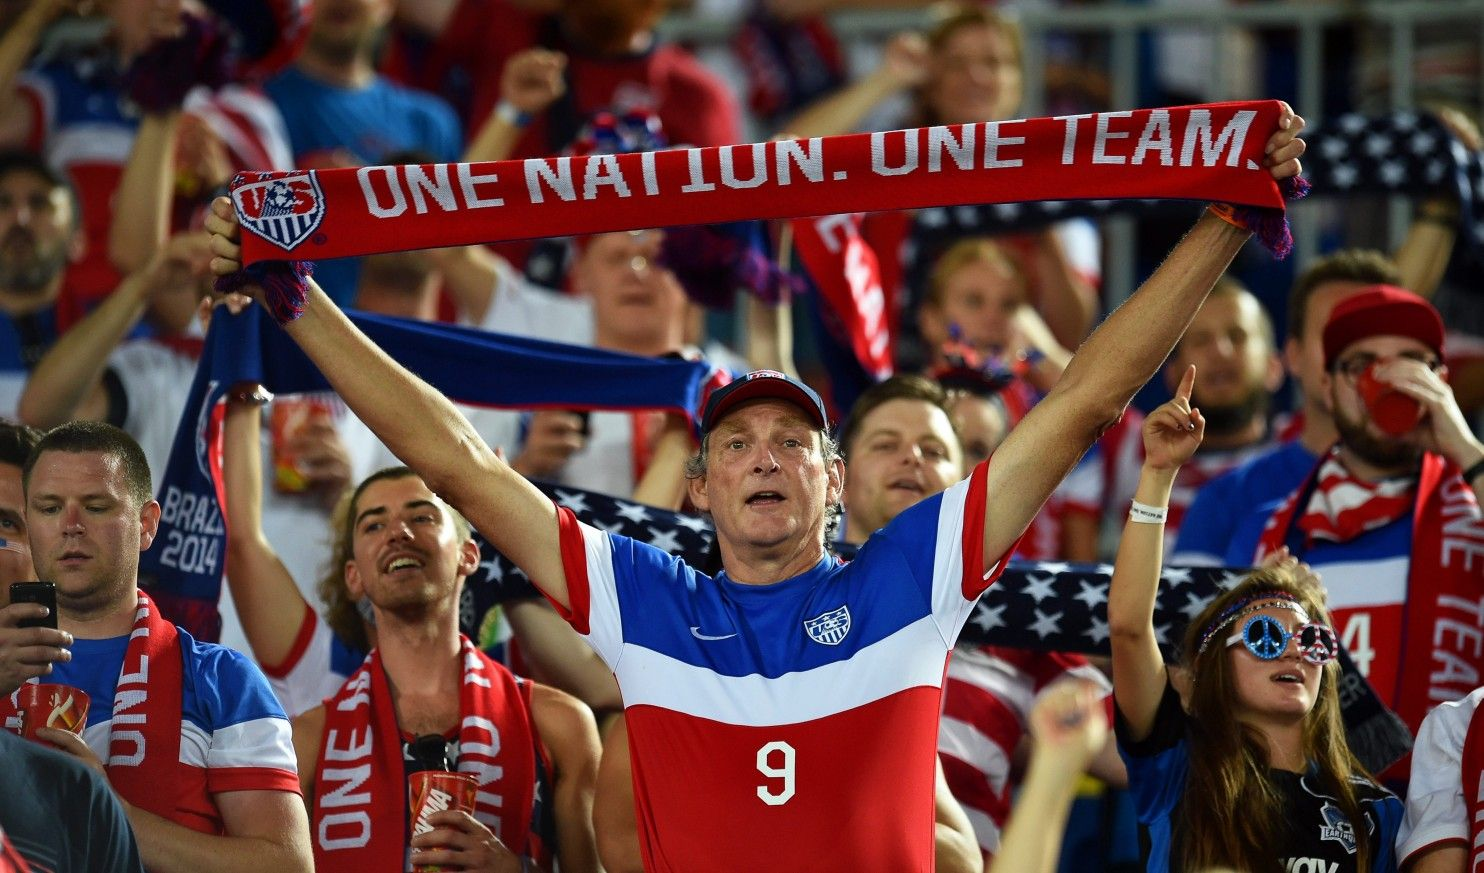 At World Cup U S Soccer Fans Converge By The Thousands Soccer Fans World Cup Sports